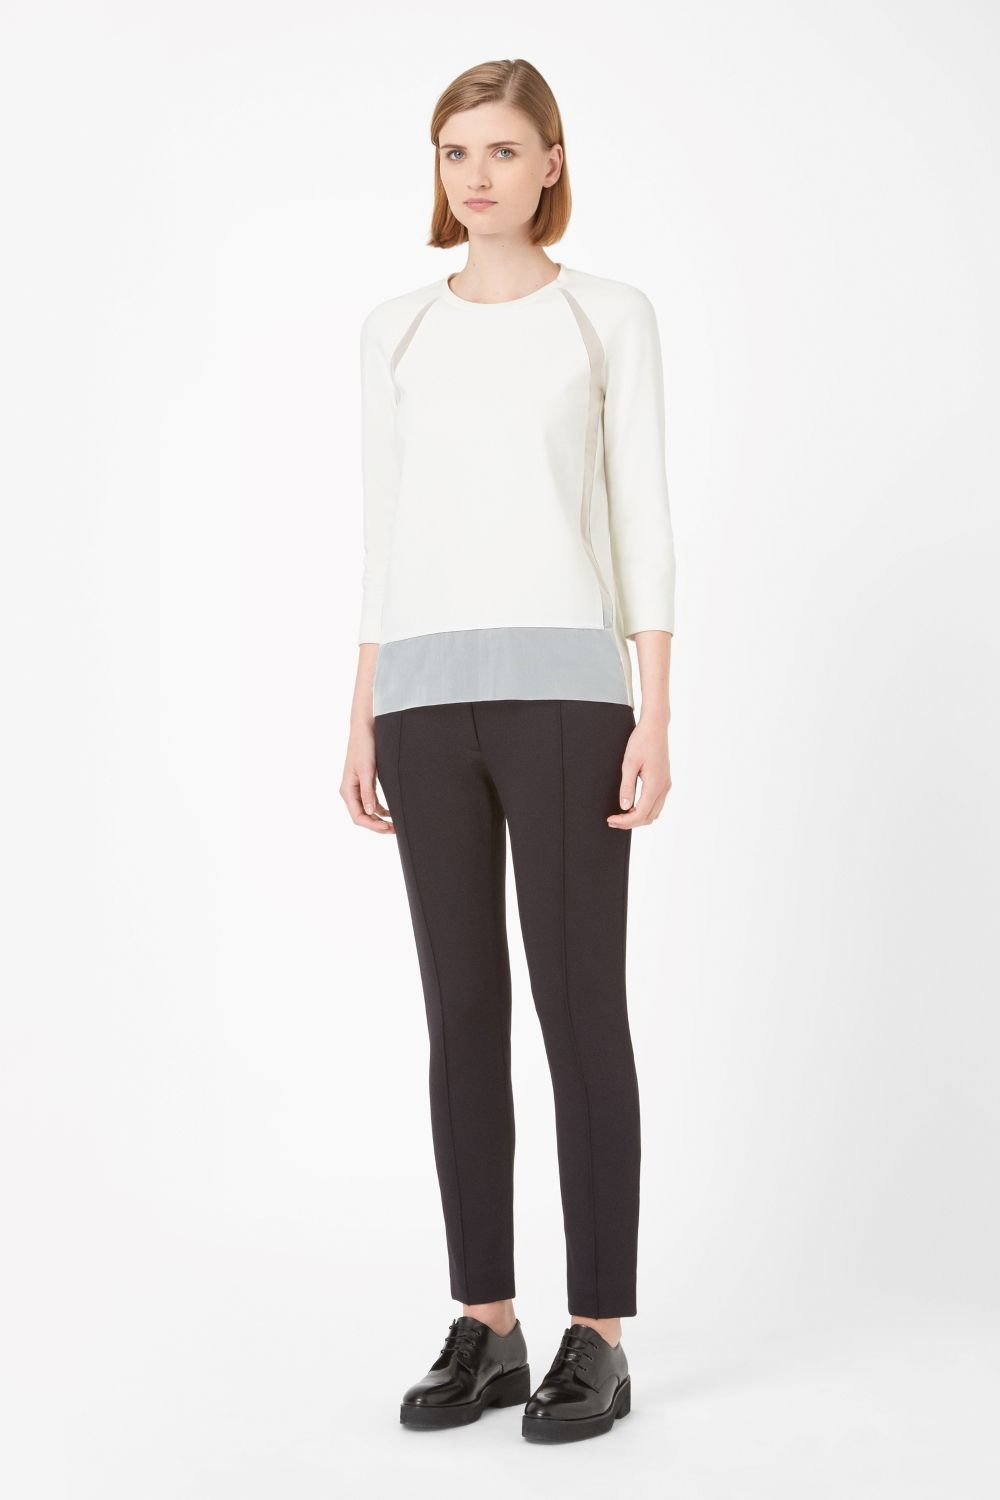 This top is made from soft jersey with contrast sheer panels along the front. A straight fit with relaxed proportions, it has raglan sleeves, a round neckline and clean raw-cut edges.